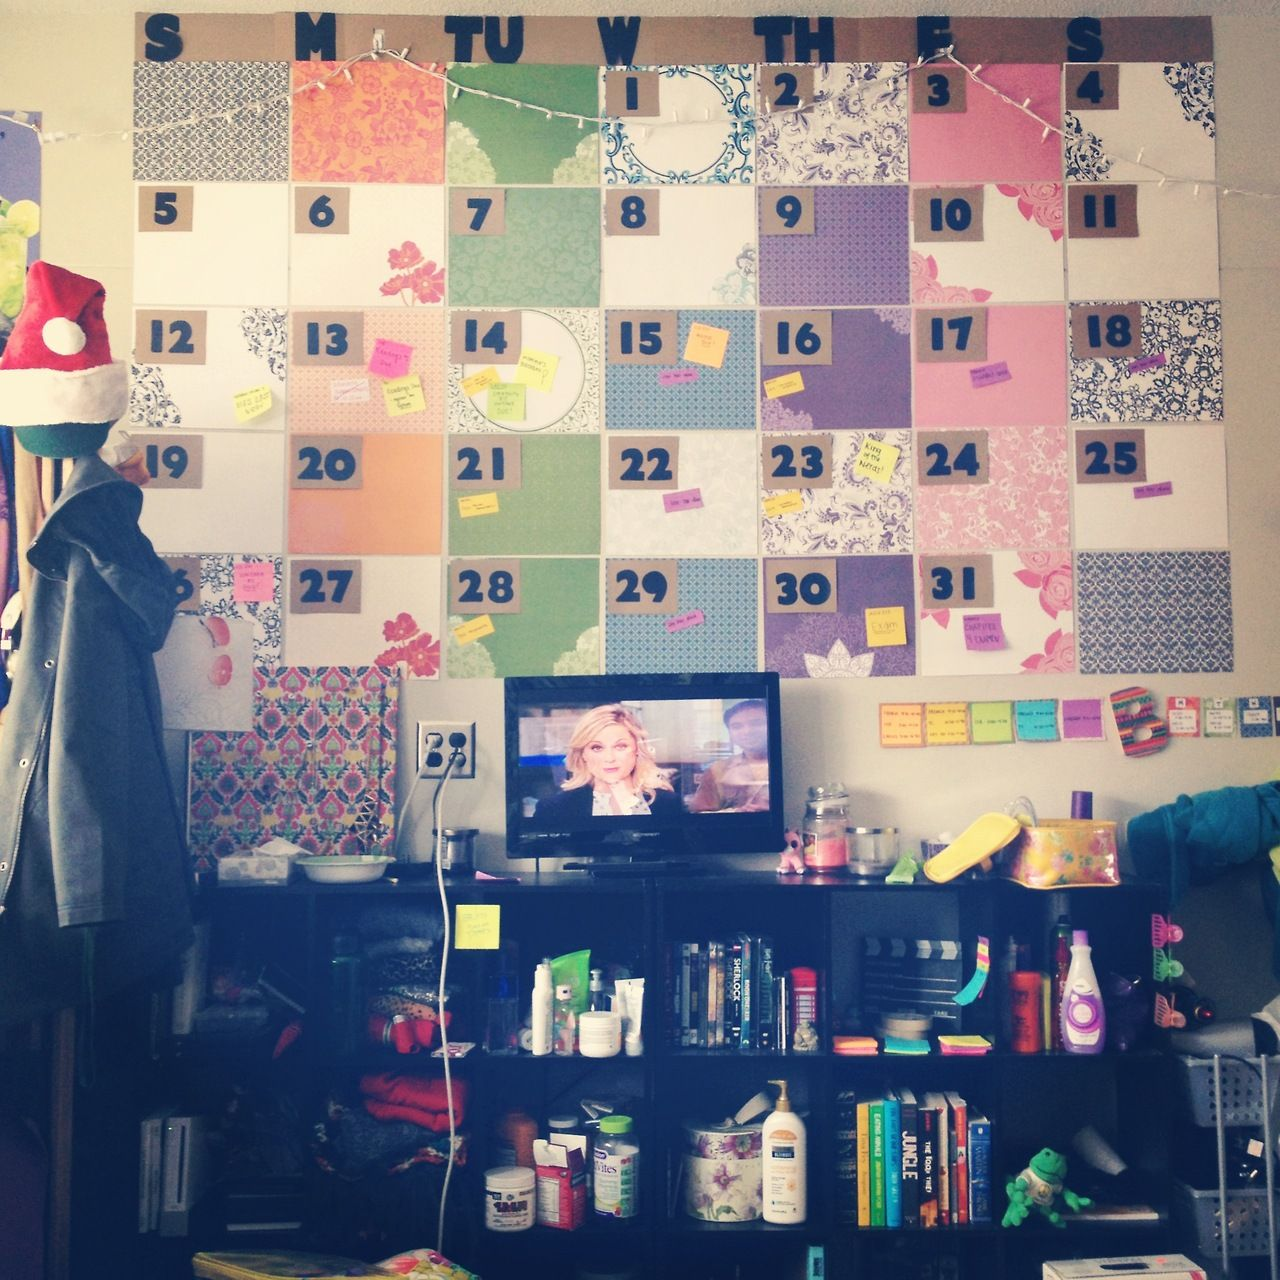 Things to make for your room - Images About Dorm Goals On Pinterest Room Cool Easy Things To Make For Your Room